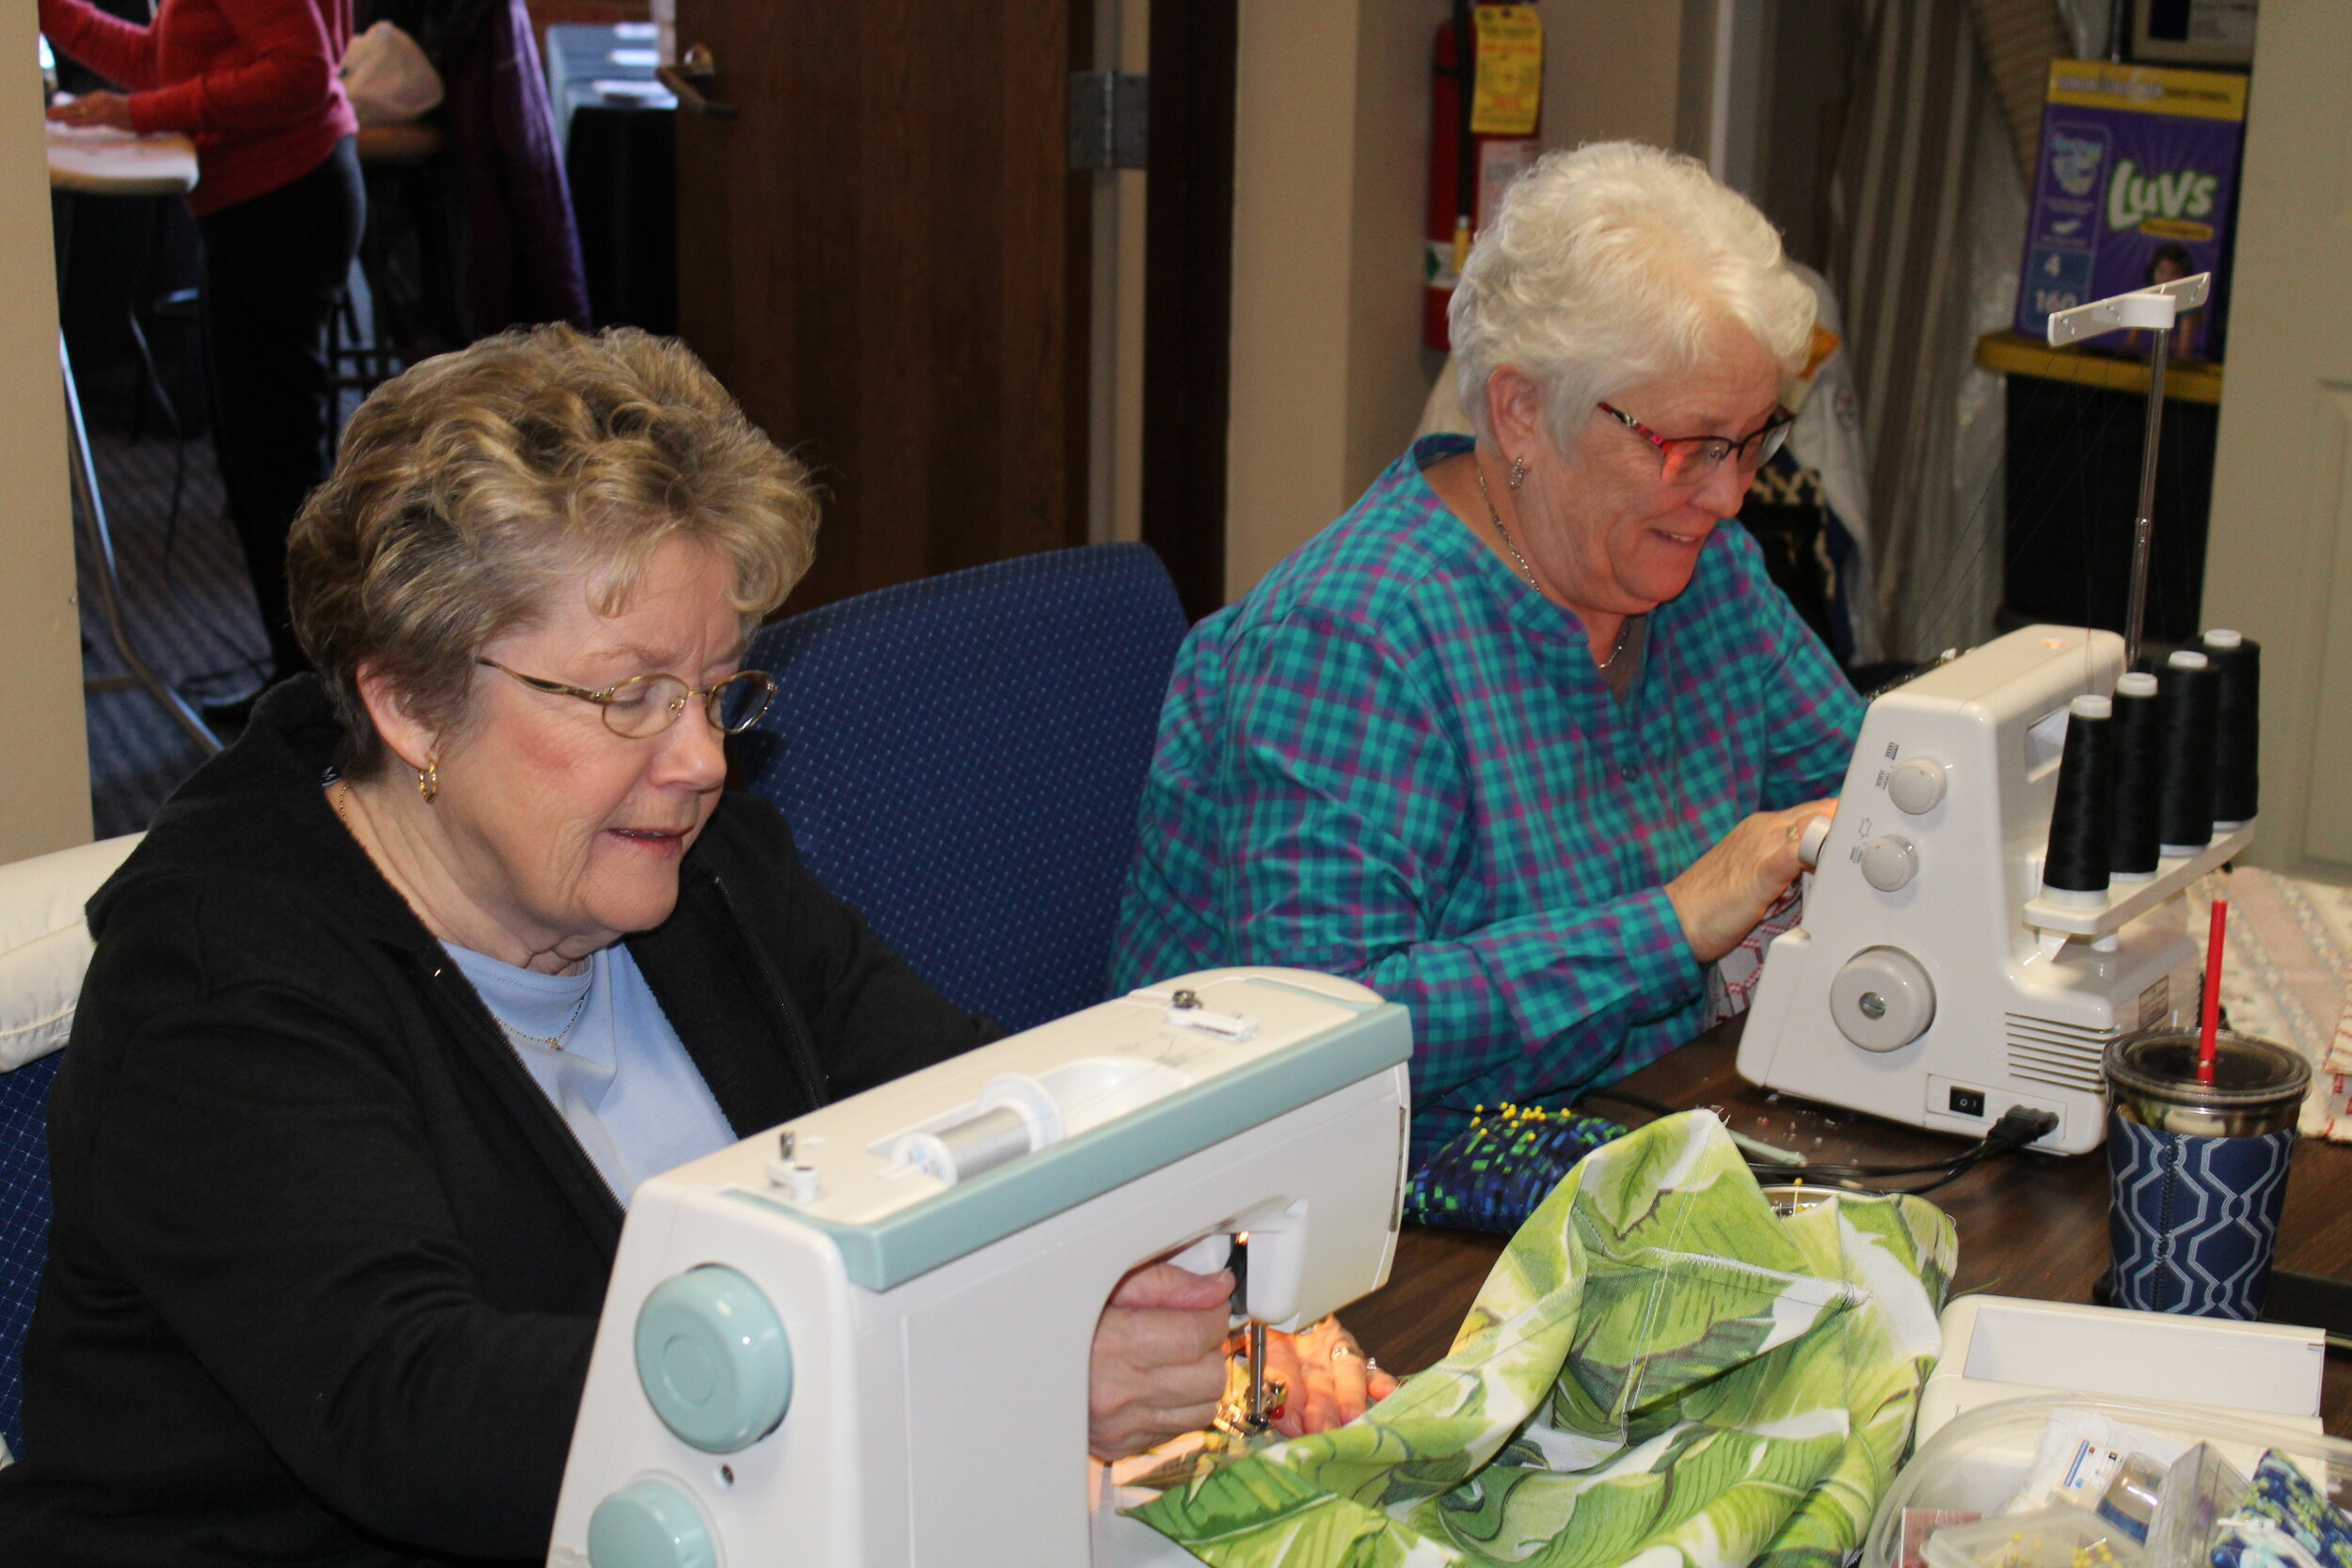 Quilt & More gatherings allow friends to work together on MHY quilts, fabric bags, or any sewing/knitting project they like. Above: Sherry Cameron and Jan Andree are hard at work.